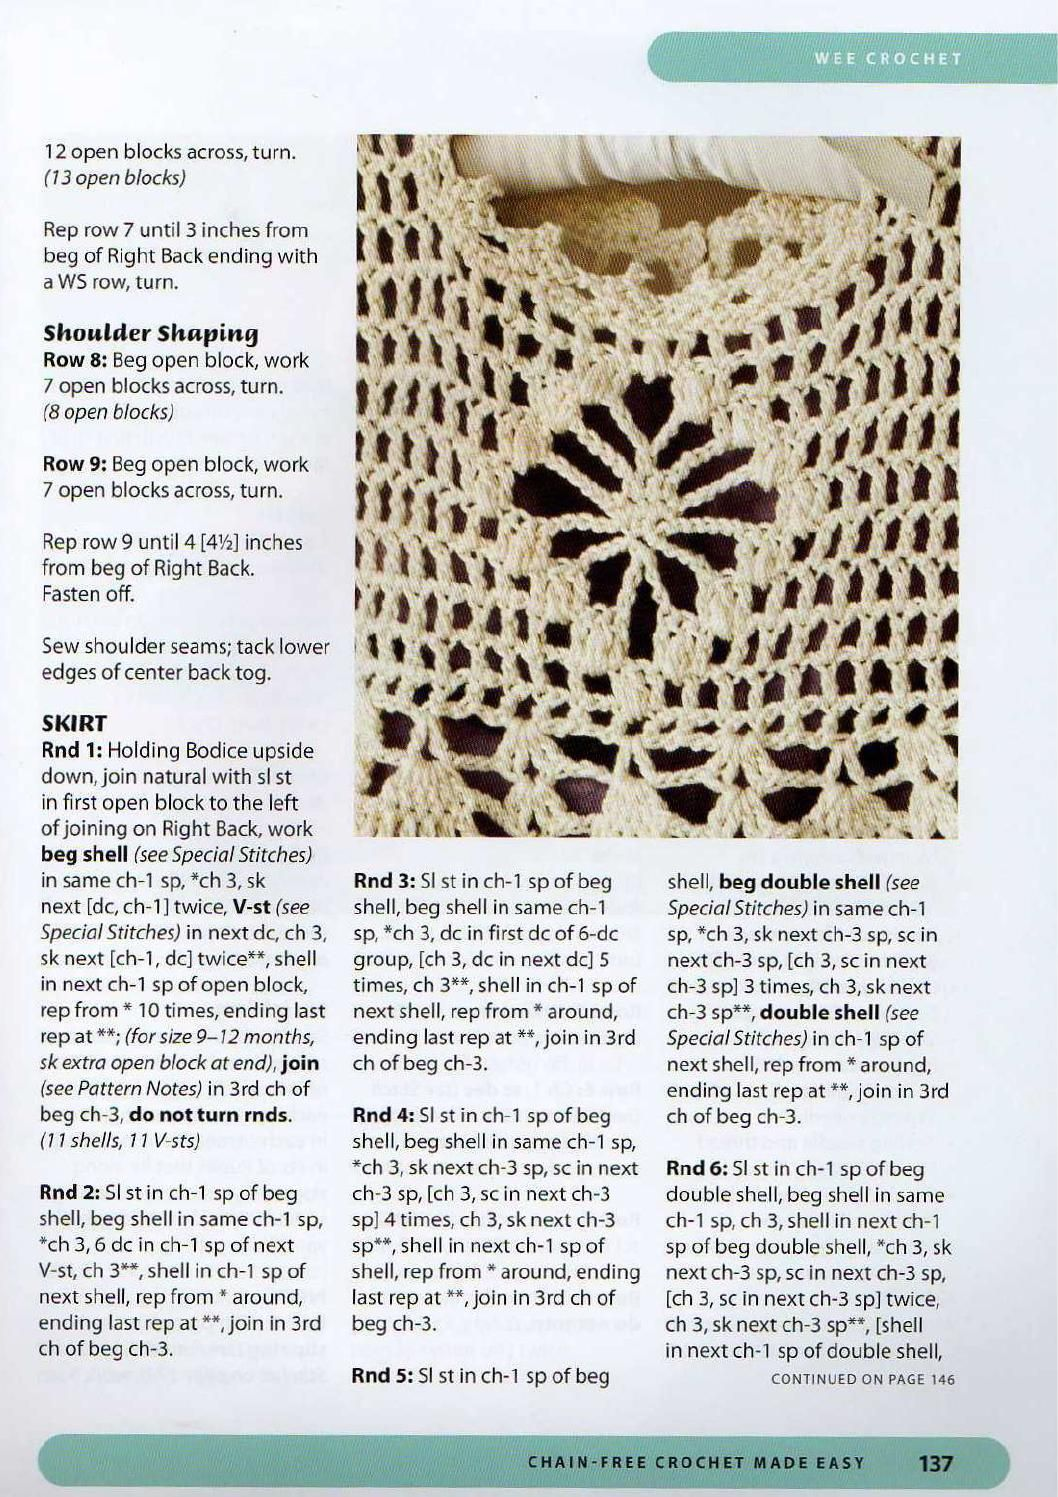 chain free crochet made easy++++ by jenny tucker - issuu